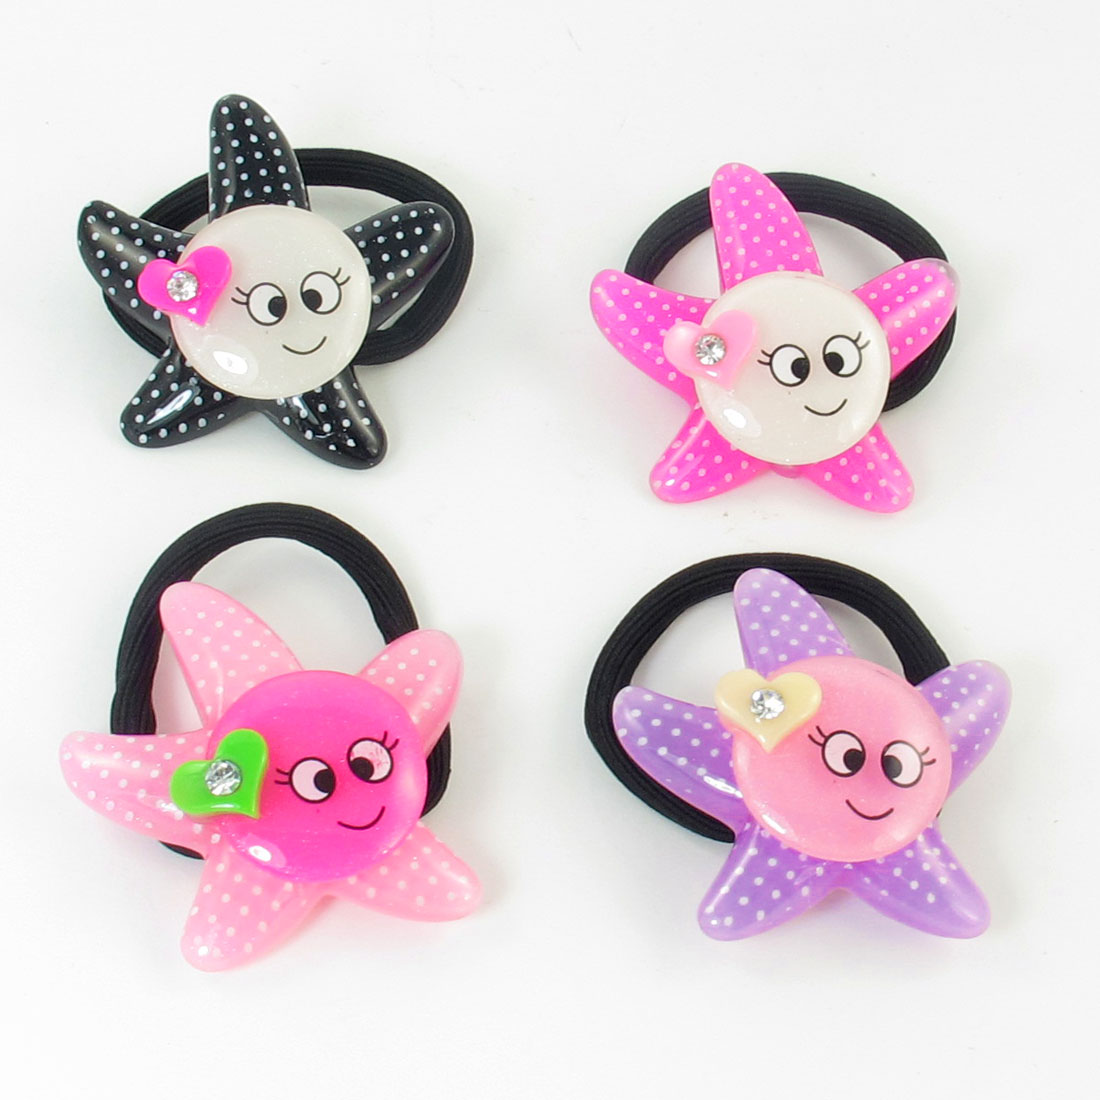 4pcs Assorted Color Smile Face Decor Stretchy Rubber Ponytail Holder for Girls